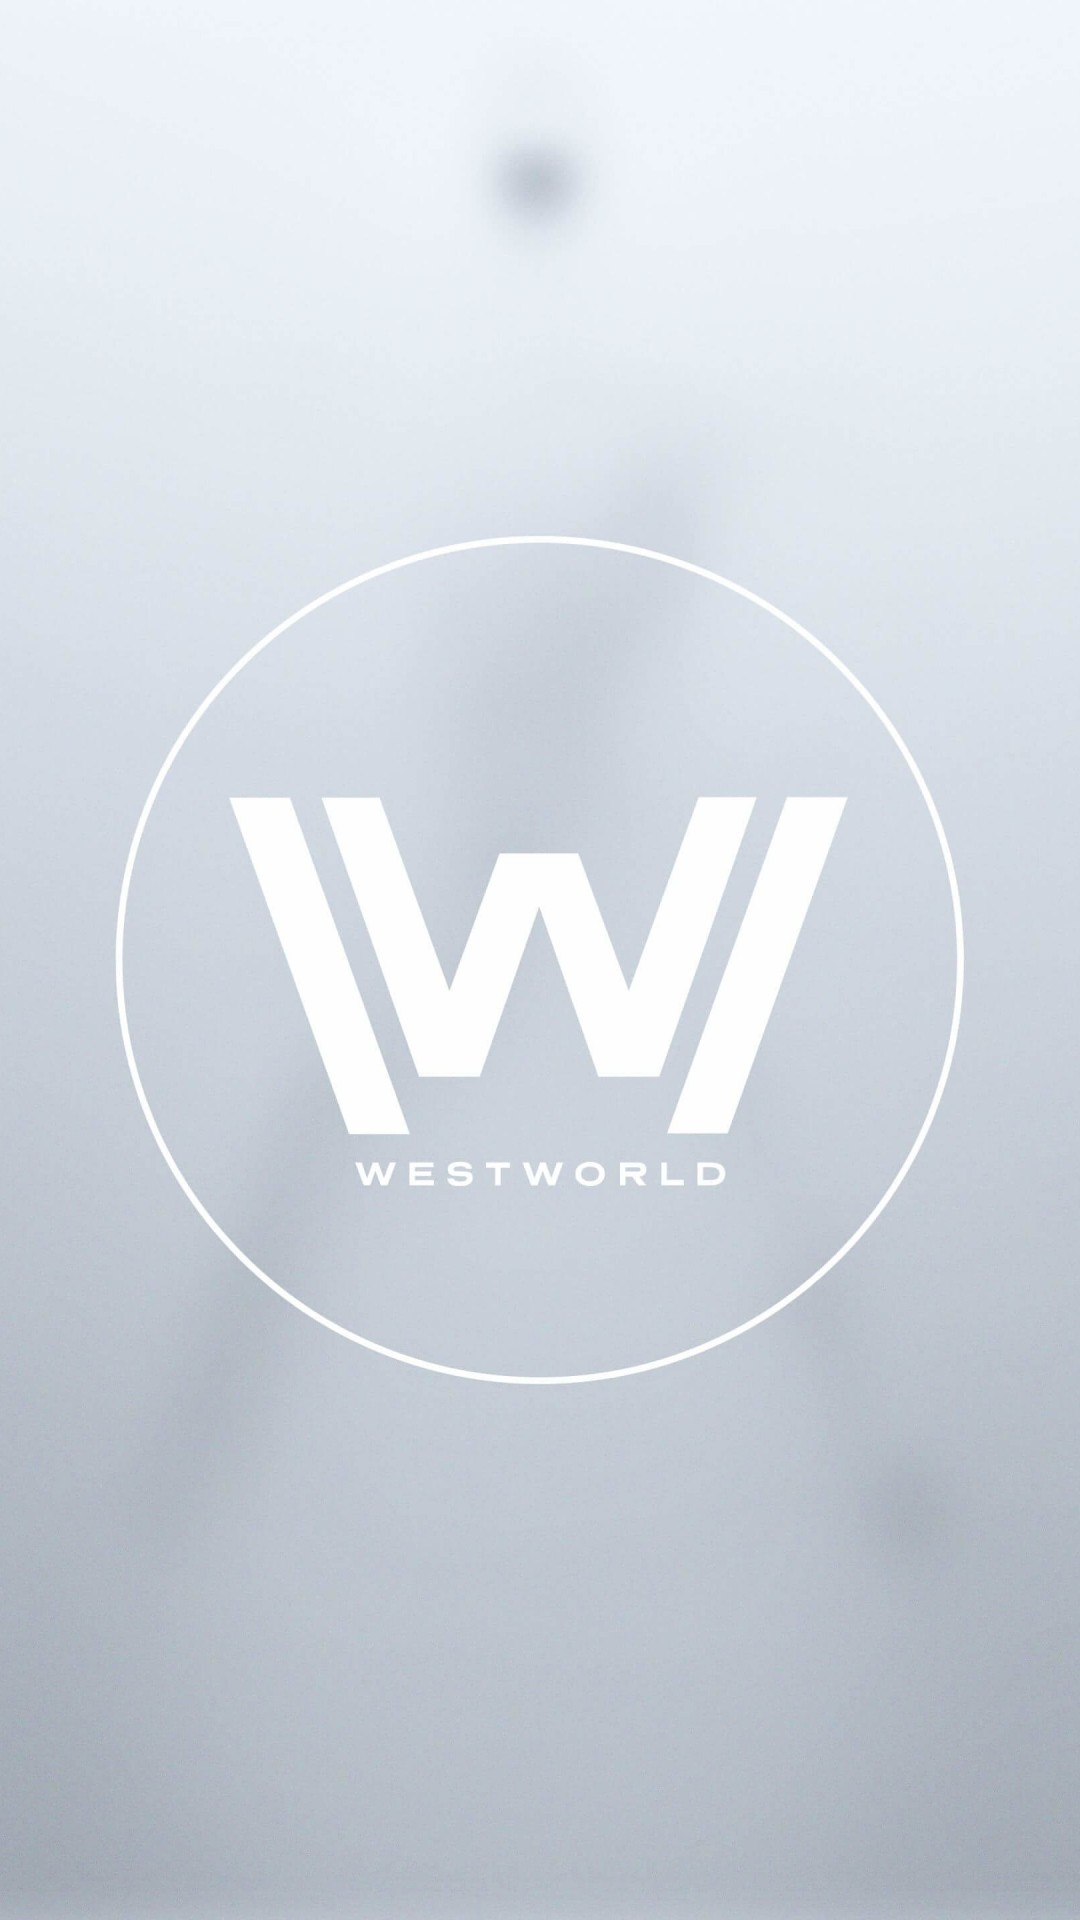 Westworld Logo Wallpaper for SONY Xperia Z3